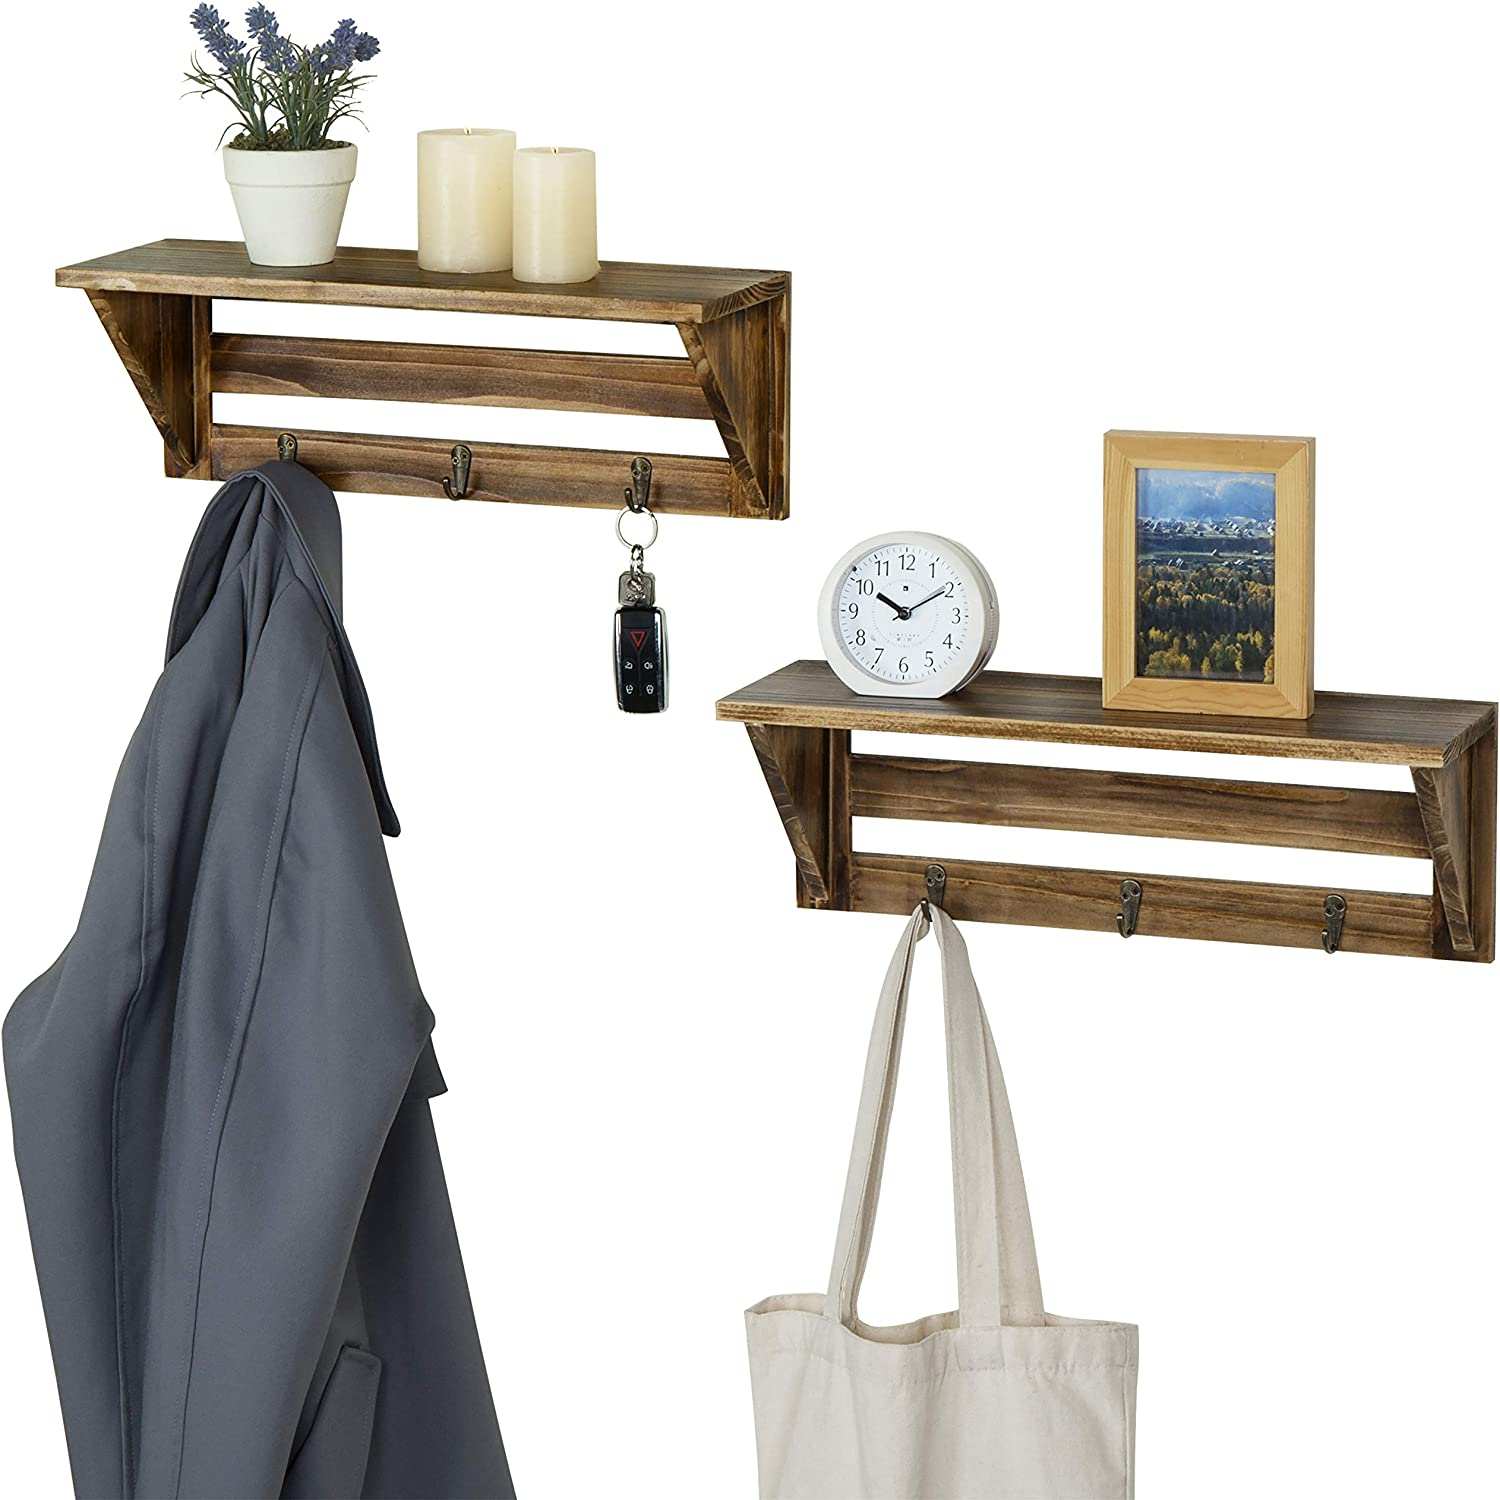 MyGift Rustic Wood Wall-Mounted Decorative Display Shelves with Key Hooks, Set of 2